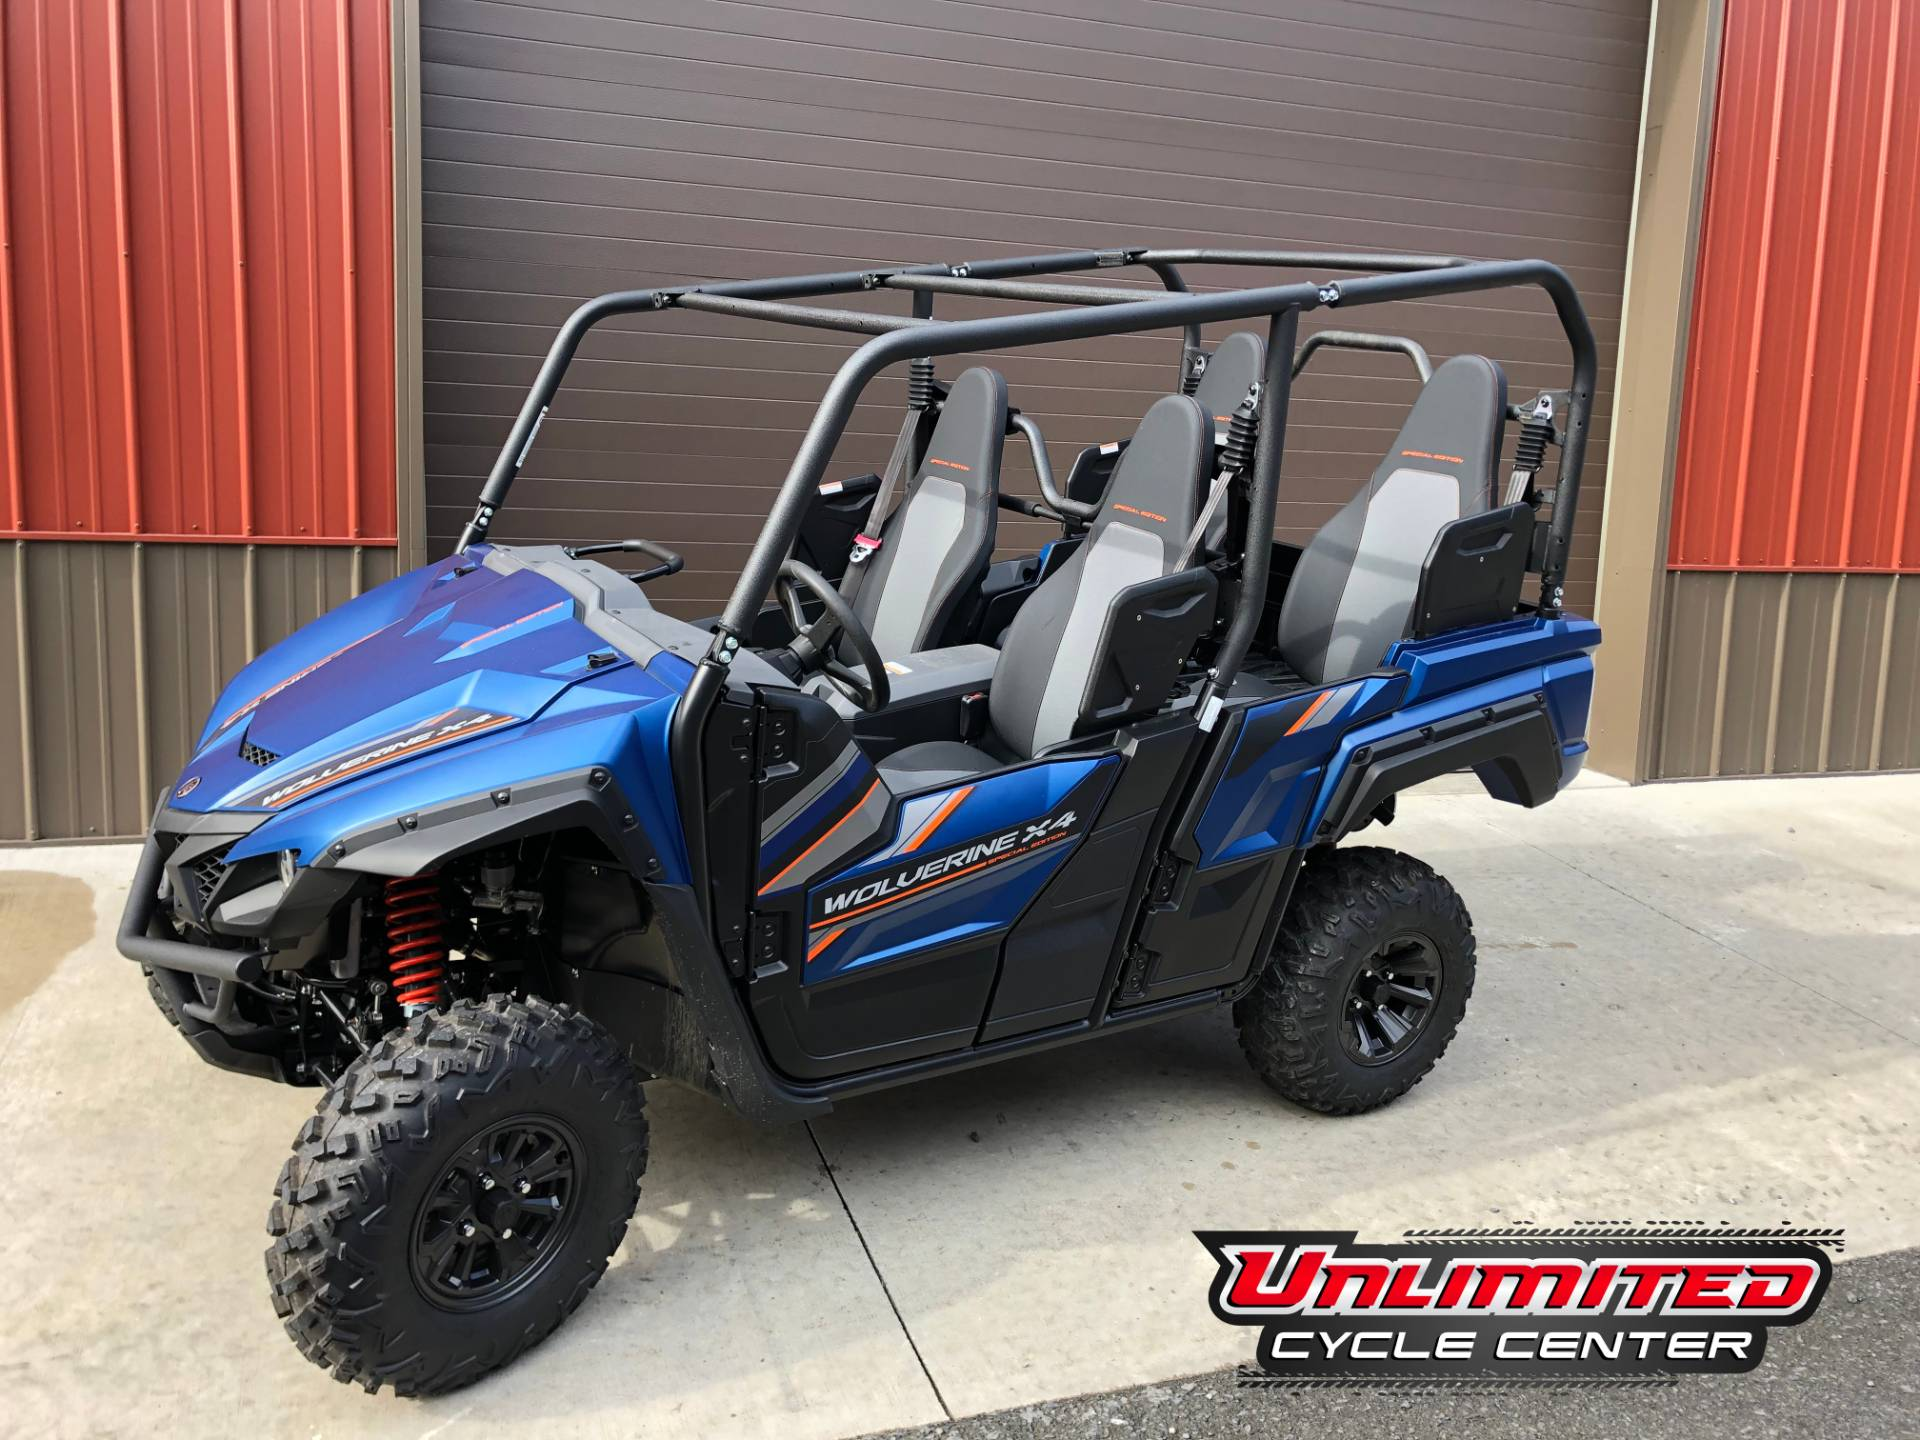 2019 Yamaha Wolverine X4 SE in Tyrone, Pennsylvania - Photo 1